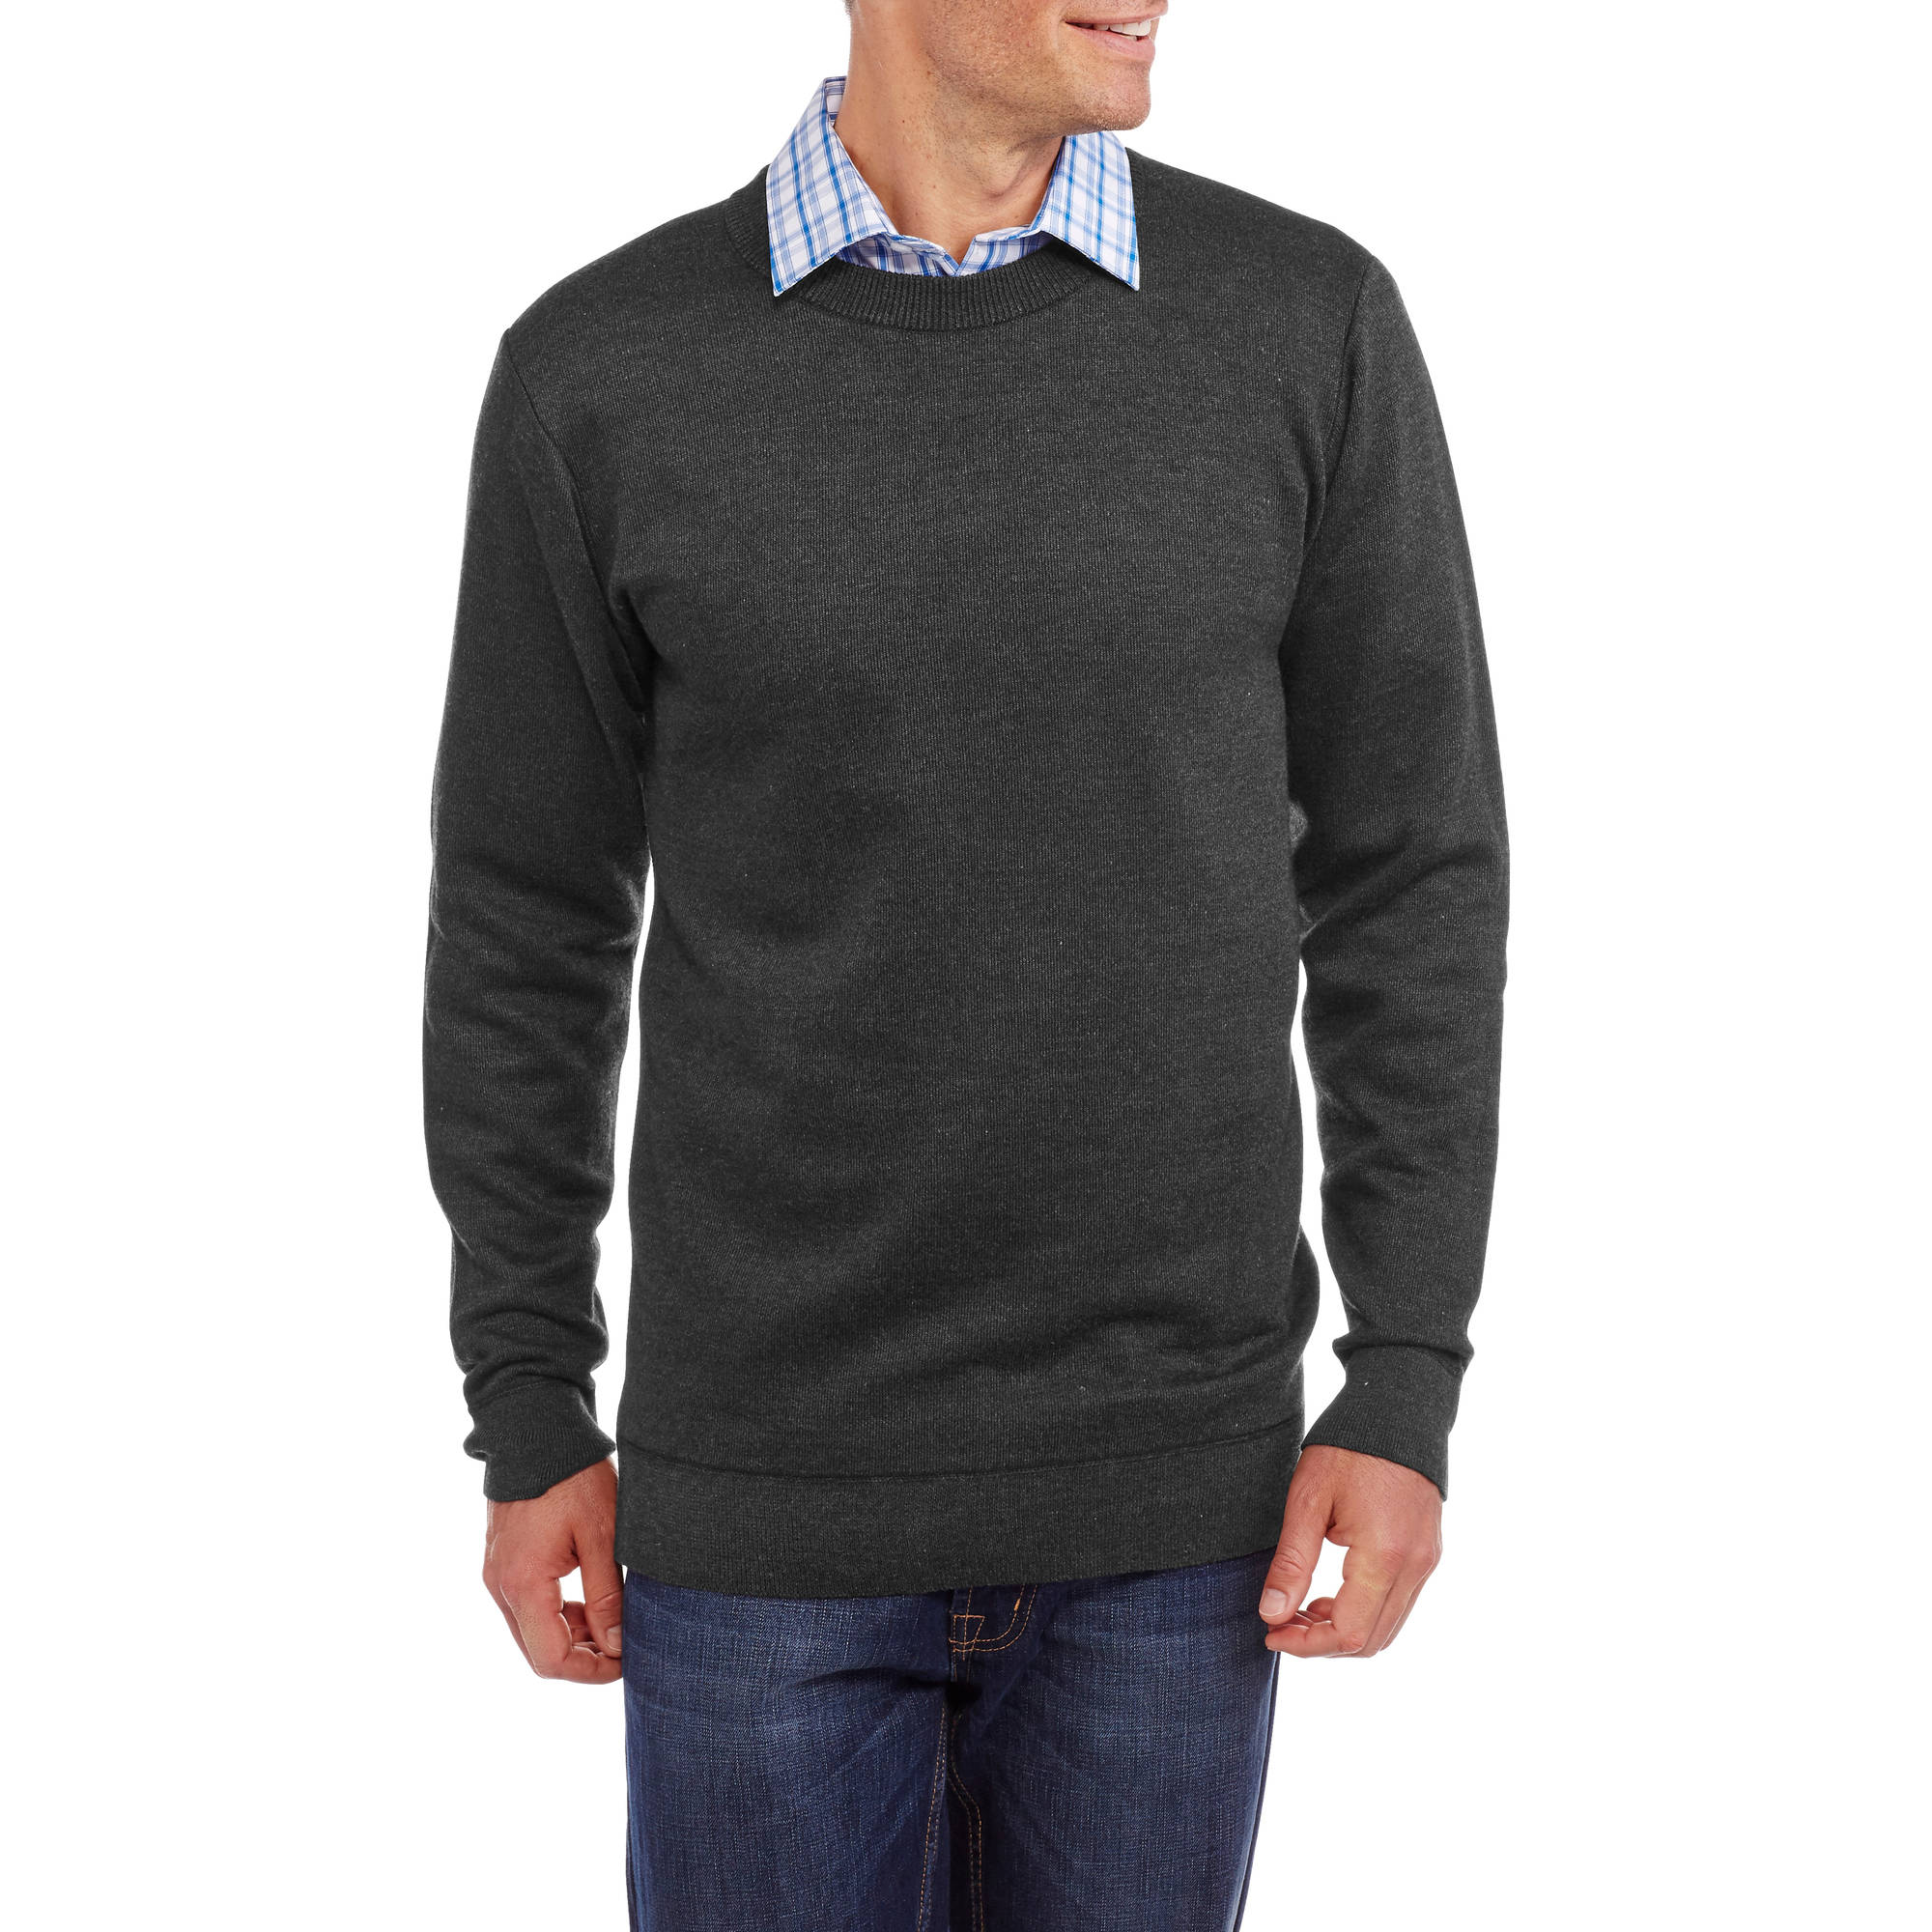 Sahara Club Men's Long Sleeve Yarn Dyed Solid Crew Neck Sweater